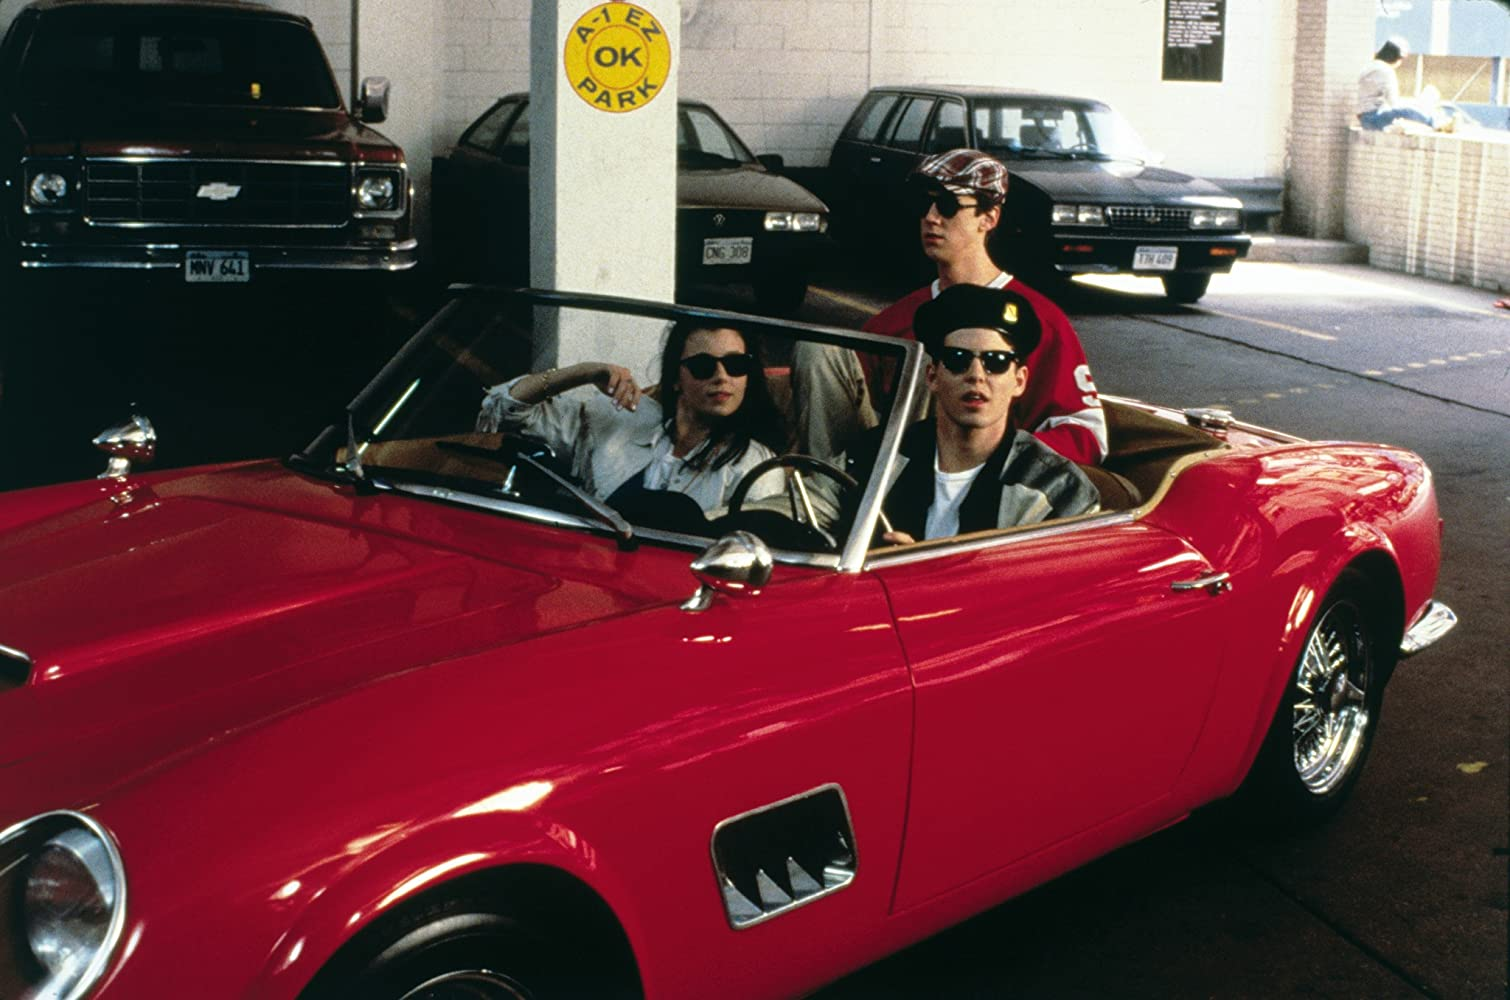 Matthew Broderick, Mia Sara, and Alan Ruck in Ferris Bueller's Day Off (1986)